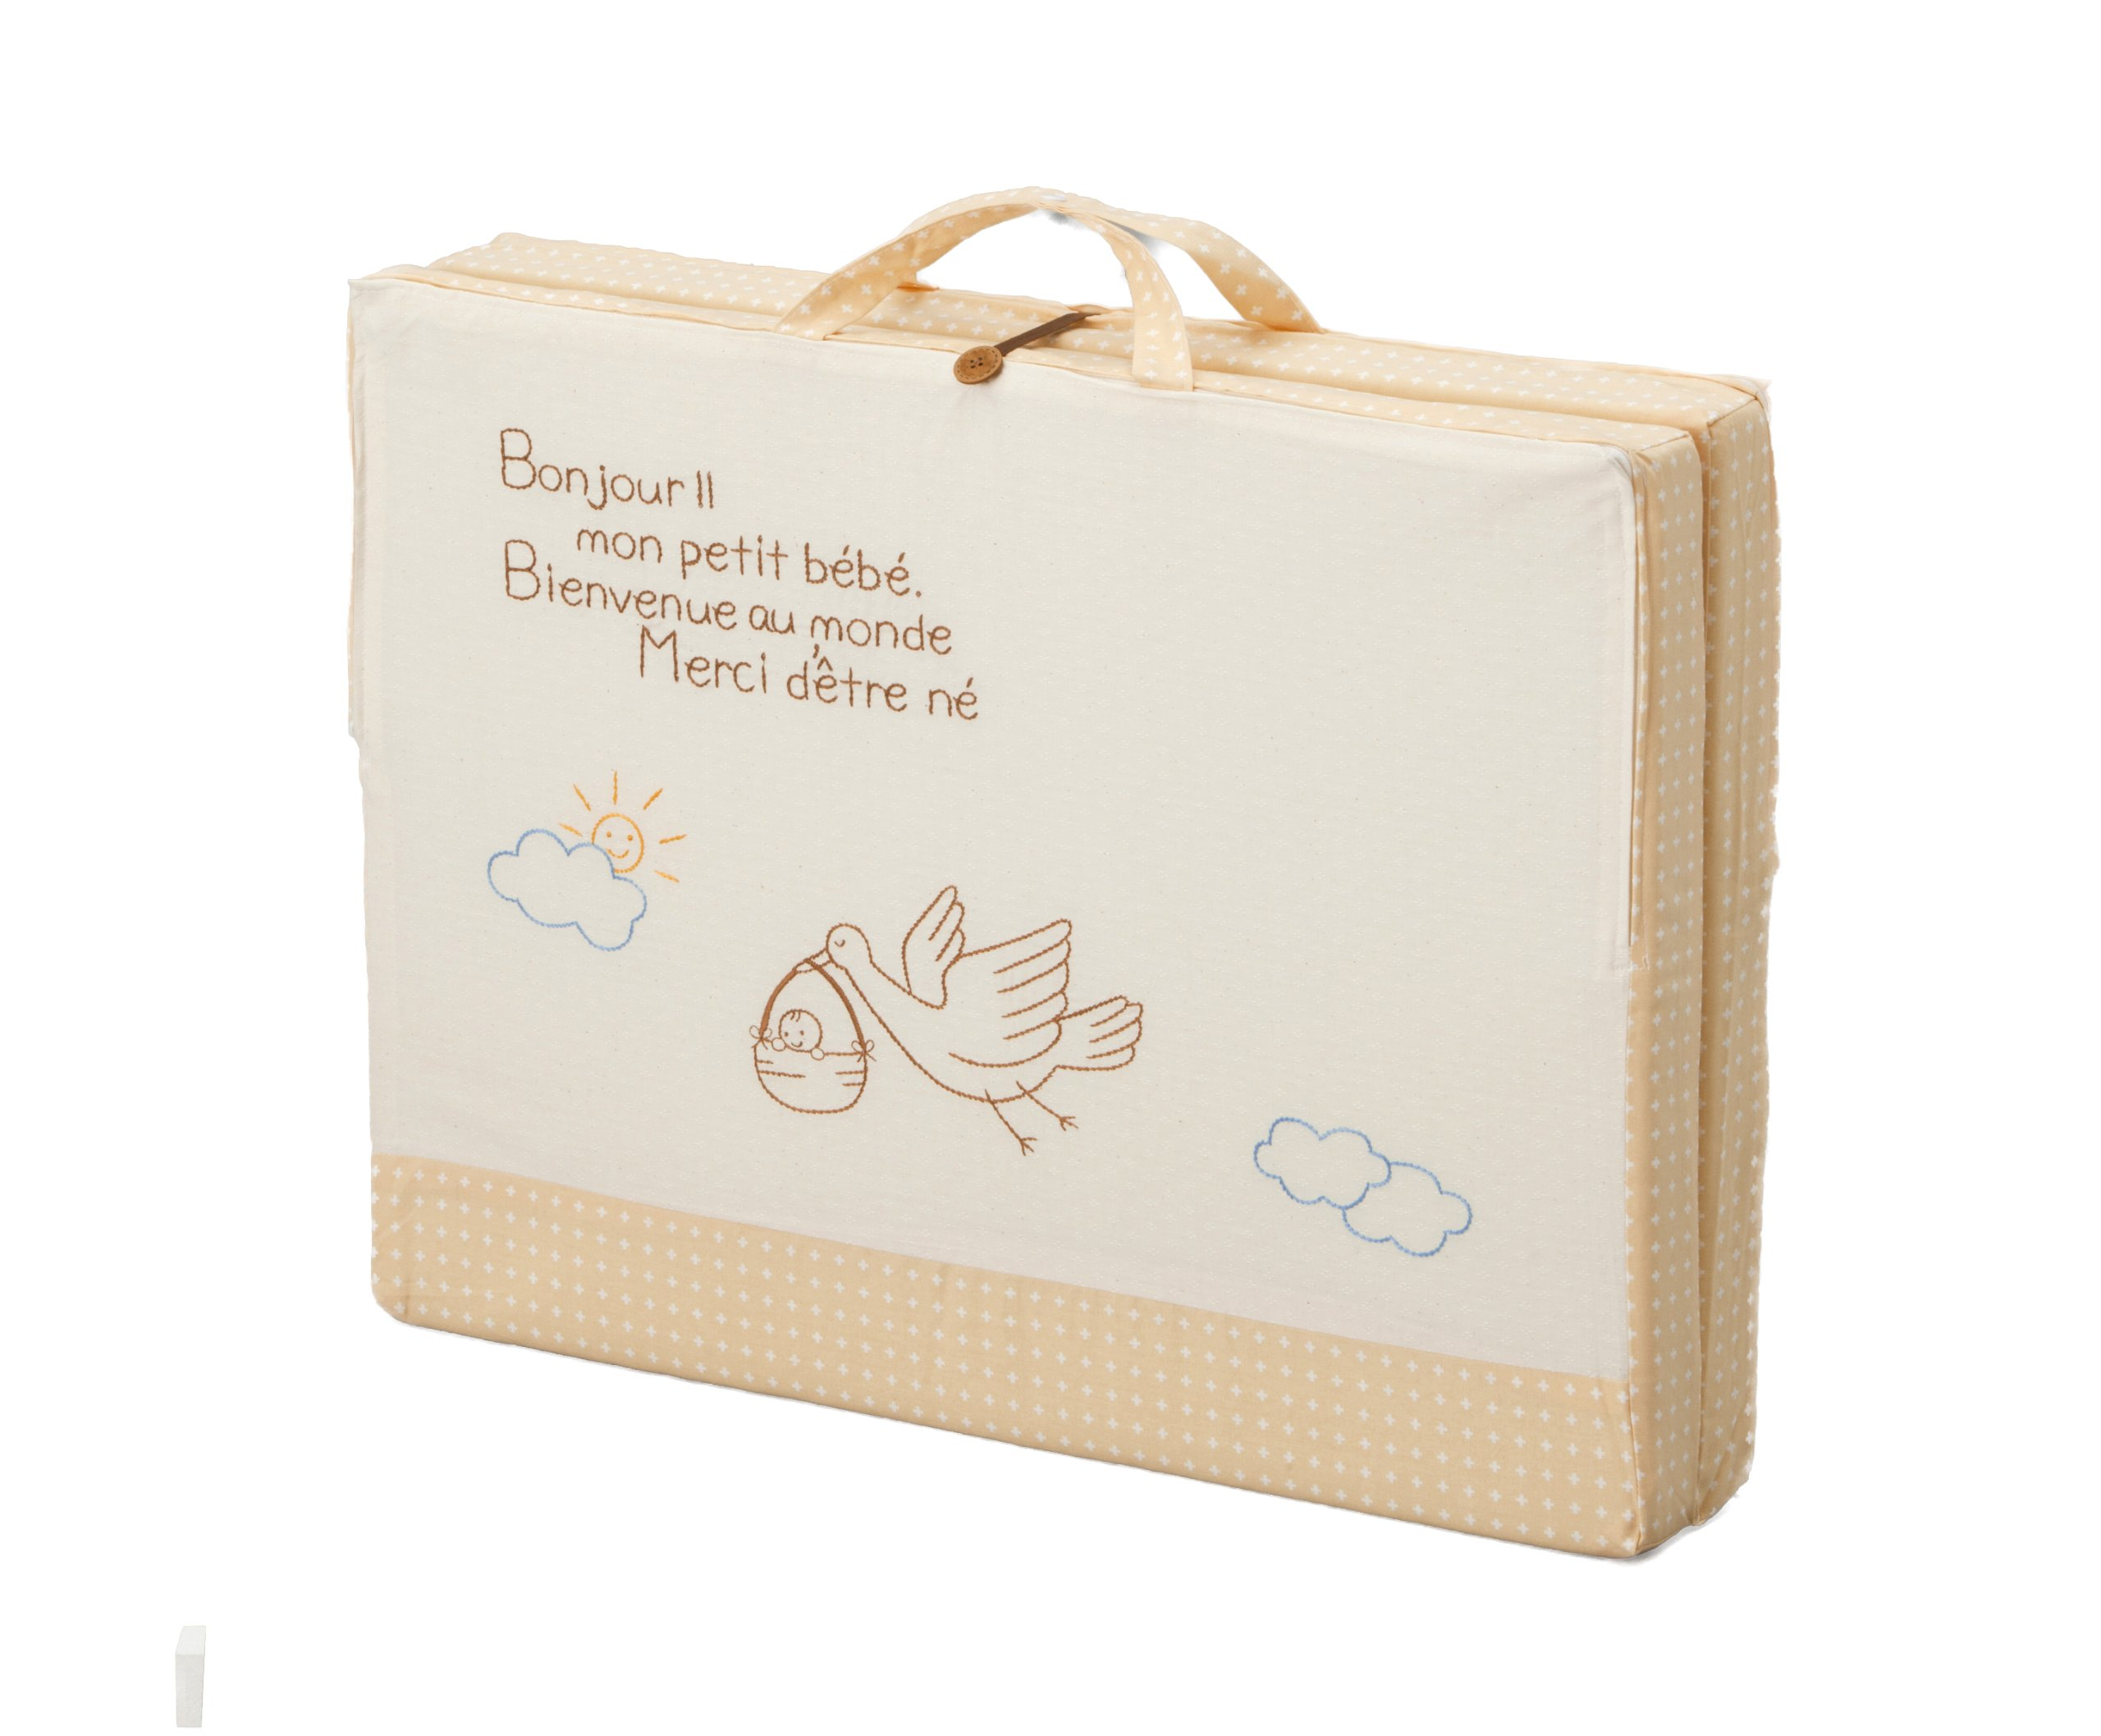 Made in Japan La nature * Le sourire Nachure * Le Suriru comfortably carry mini size baby with handle mattress two broken type